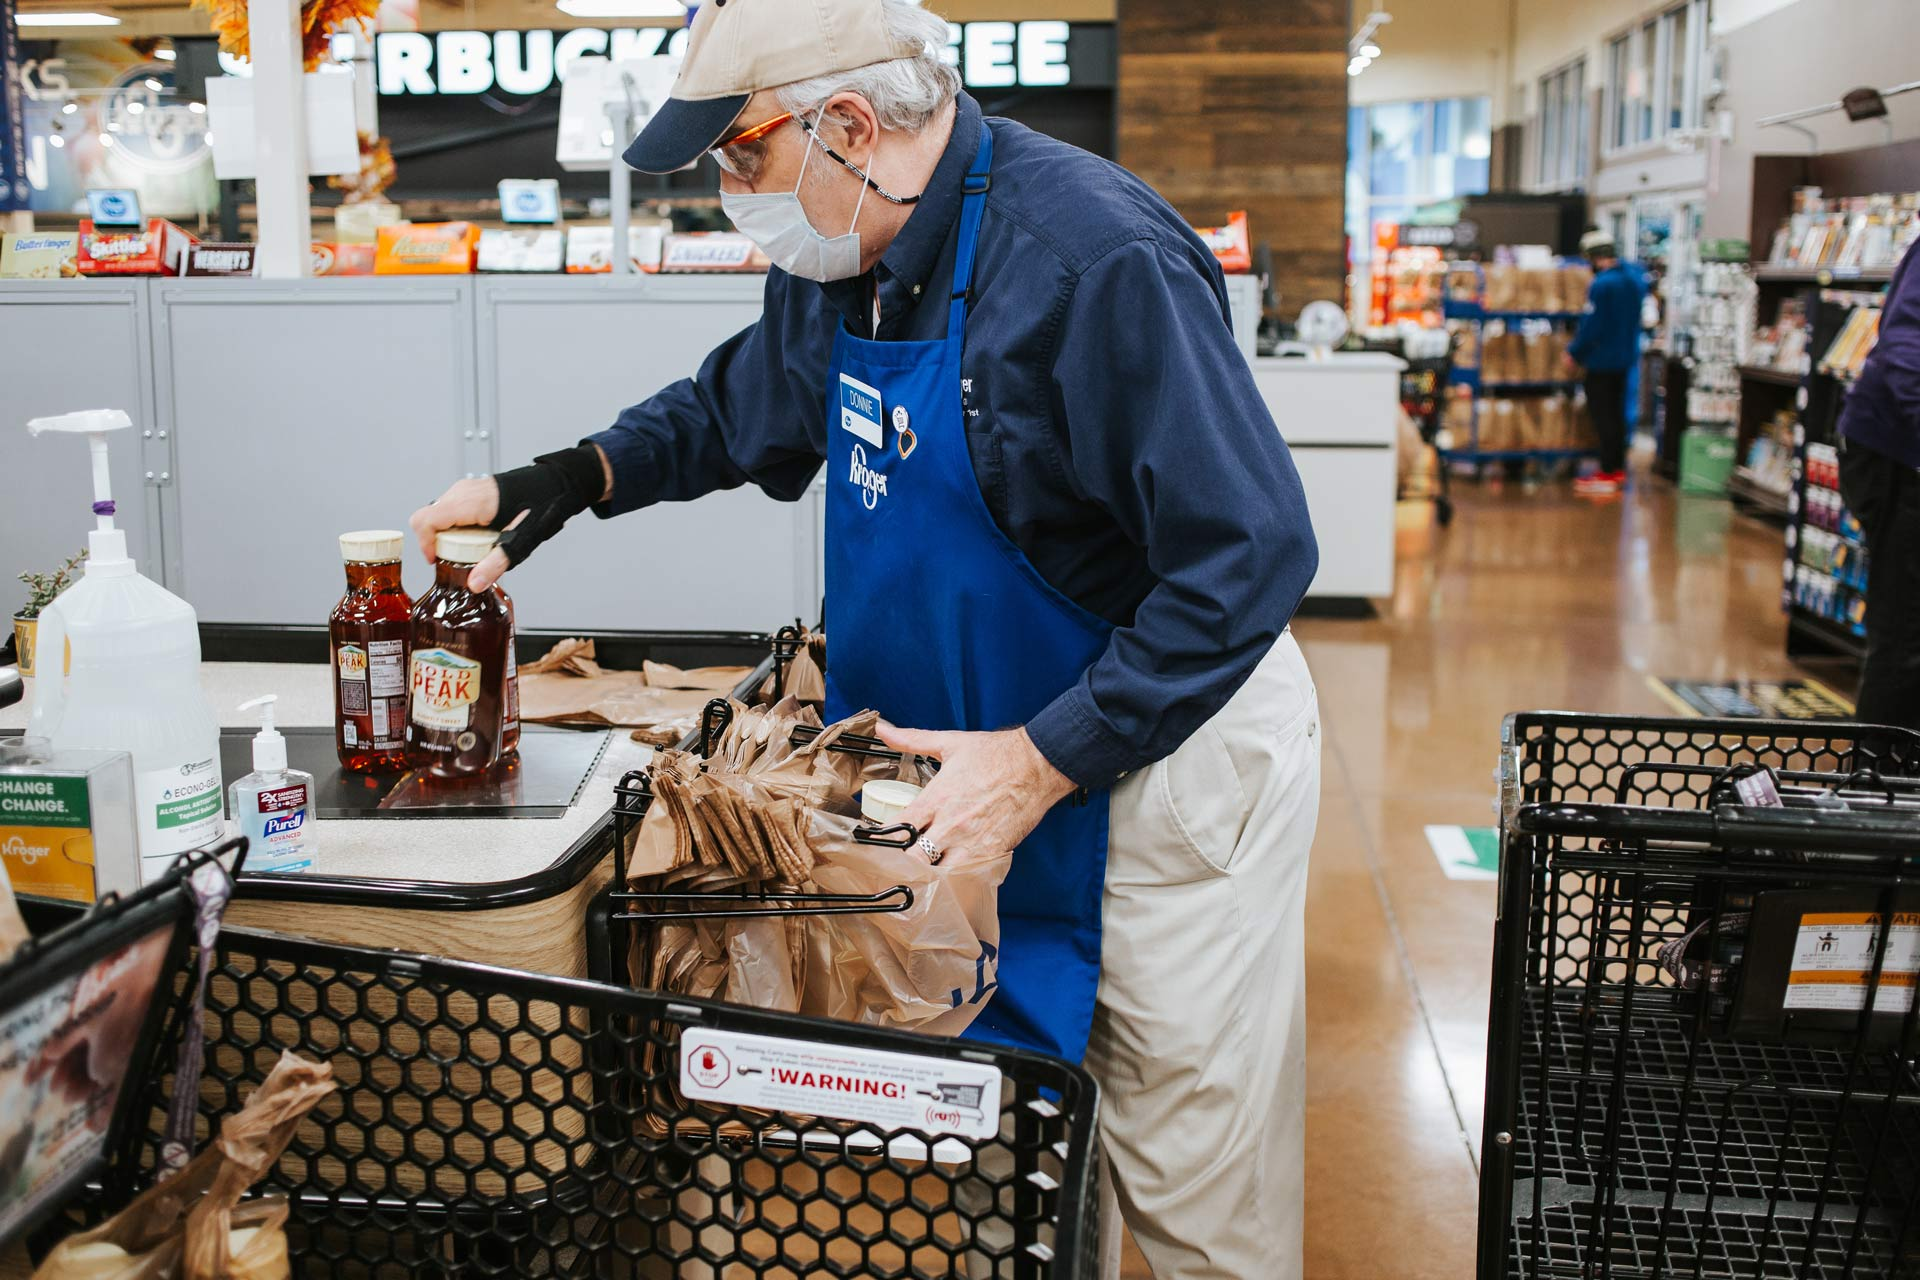 Donald is putting groceries in a plastic bag at a Kroger supermarket. He is wearing a facemask, a khaki baseball cap and a blue Kroger apron and nametag.